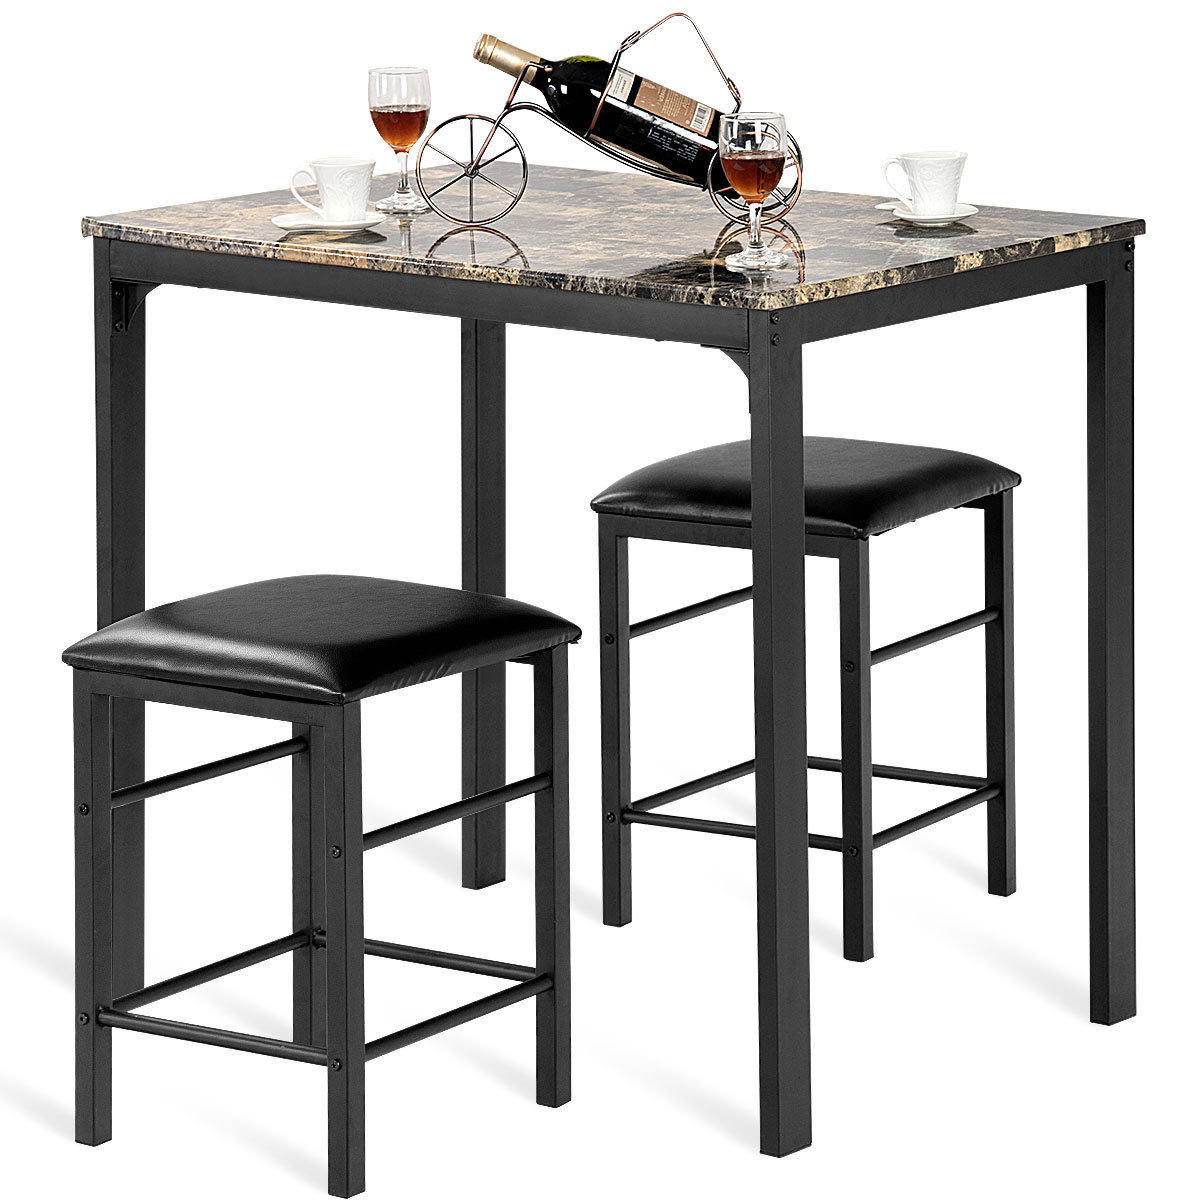 Most Recent Miskell 3 Piece Dining Sets Within Winston Porter Mitzel 3 Piece Dining Set & Reviews (View 2 of 25)